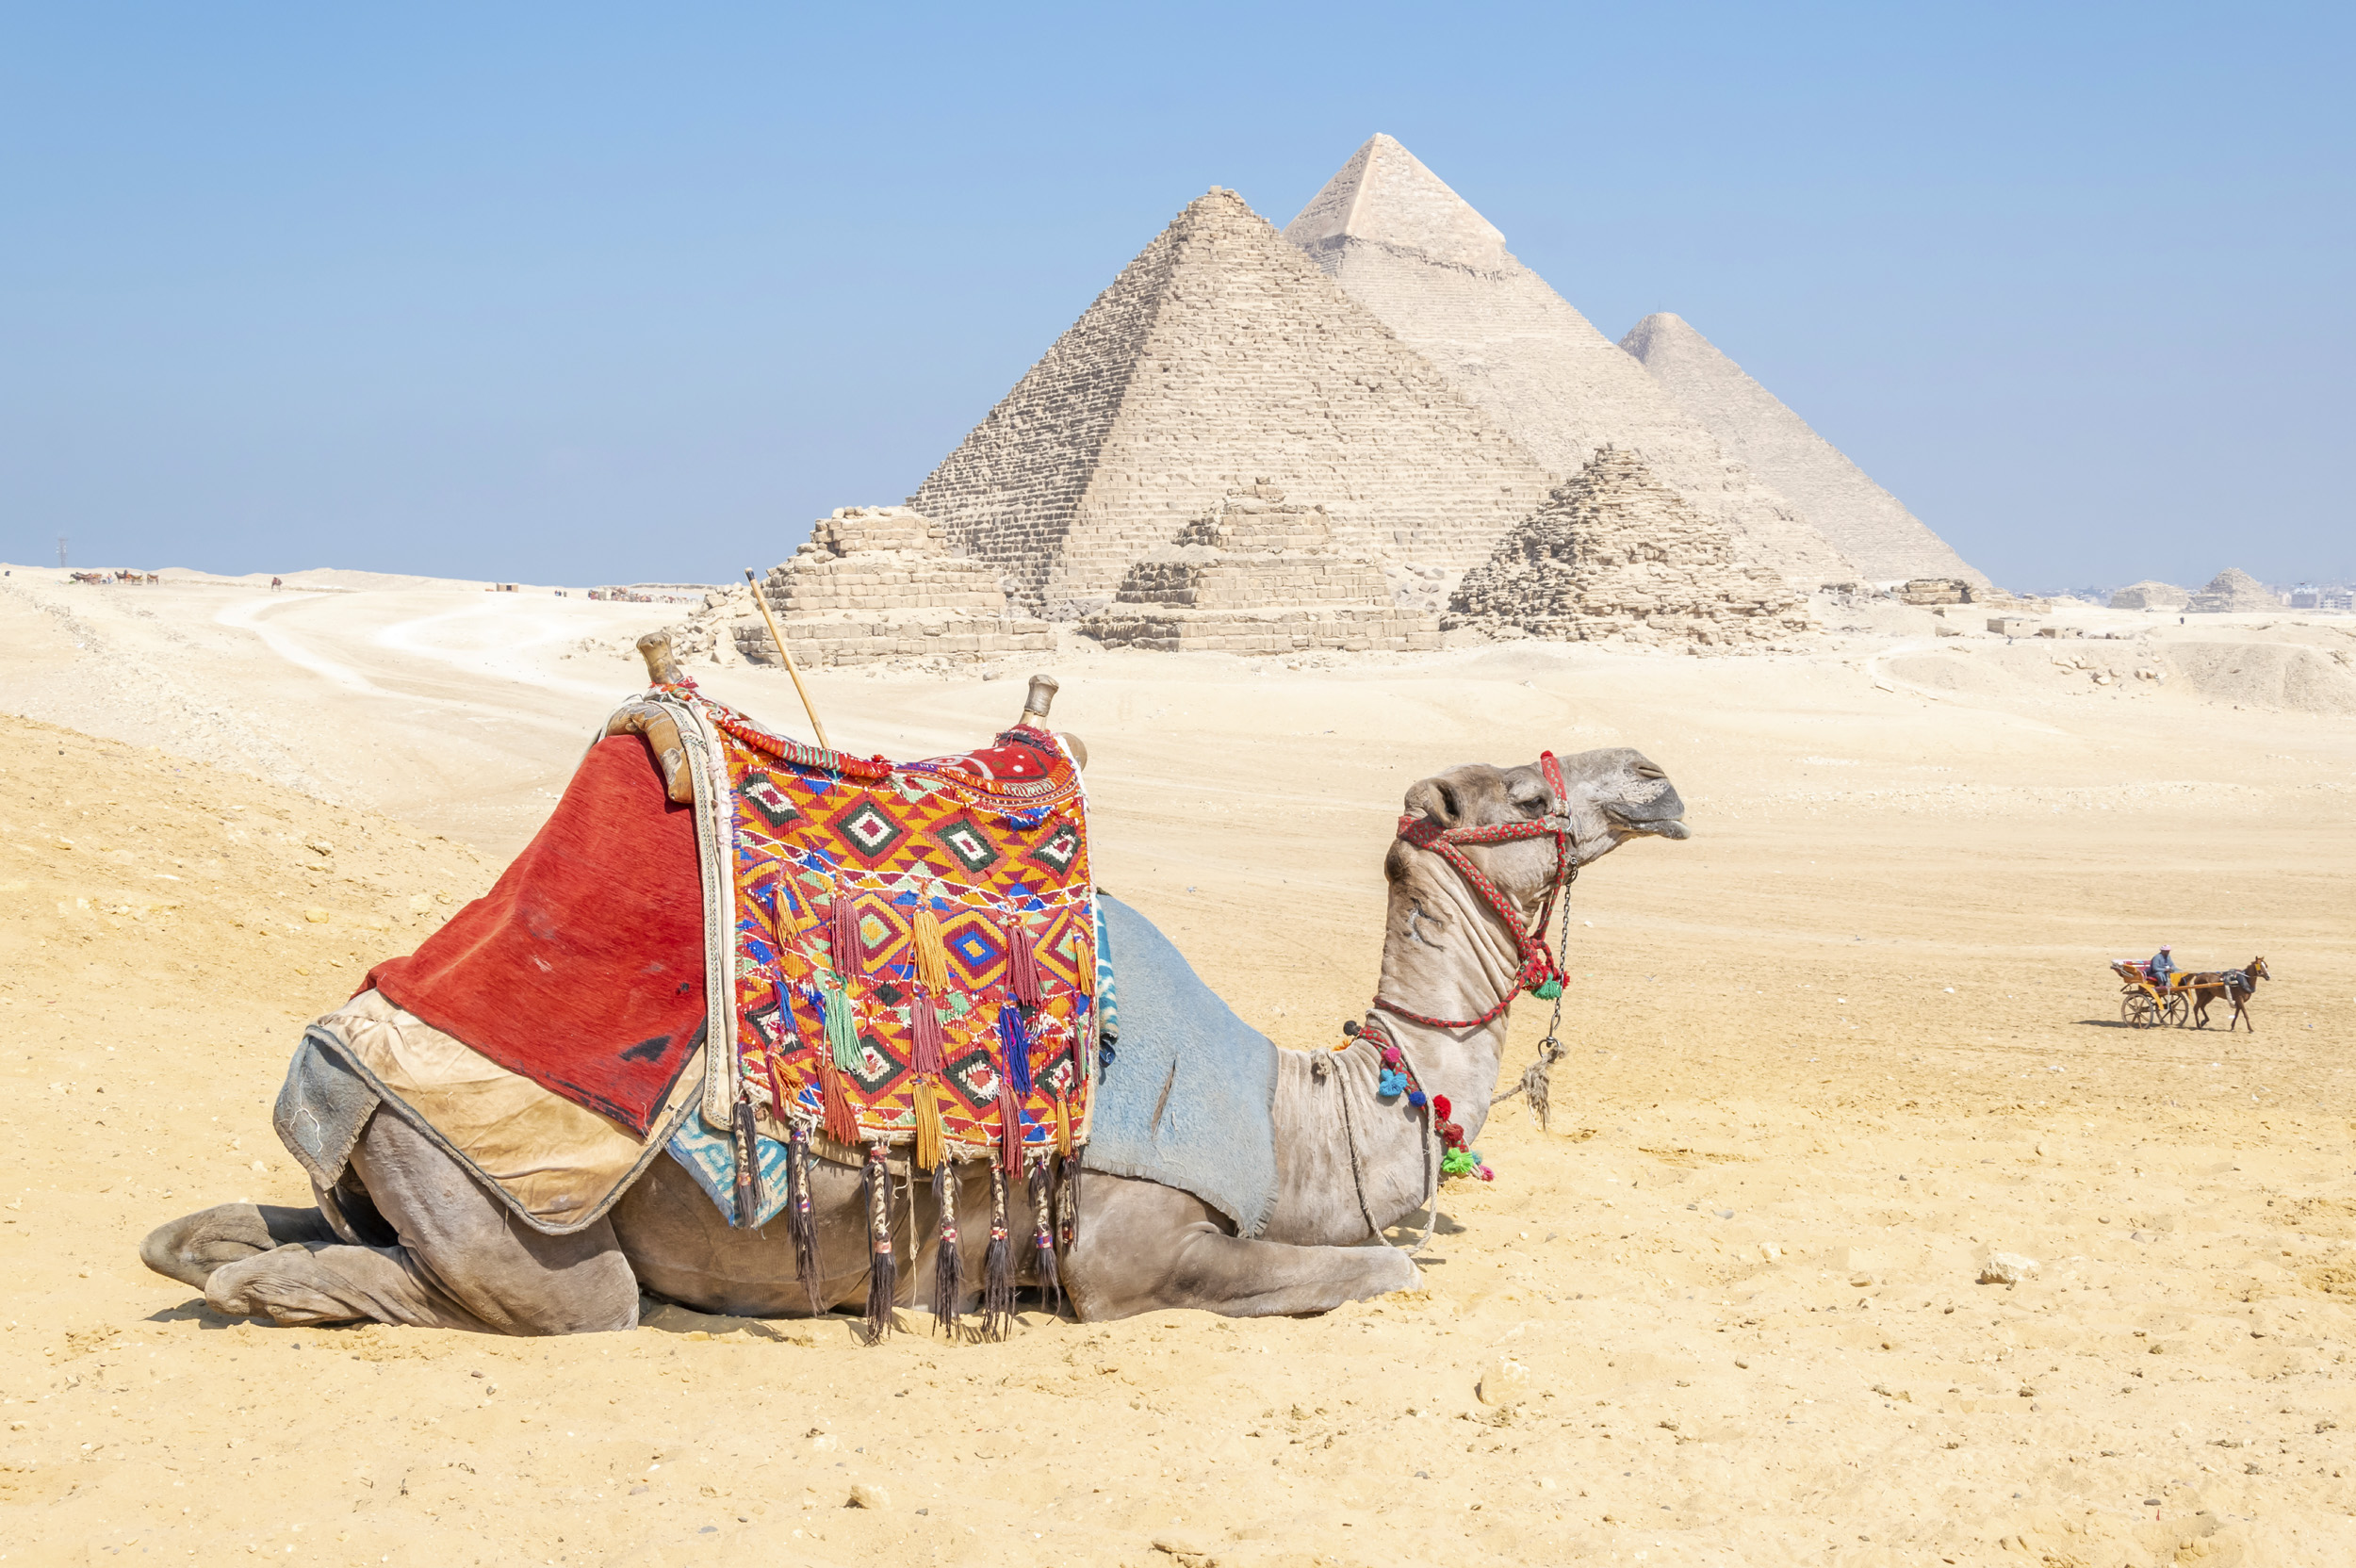 Camel resting by the Pyramids - Giza, Egypt